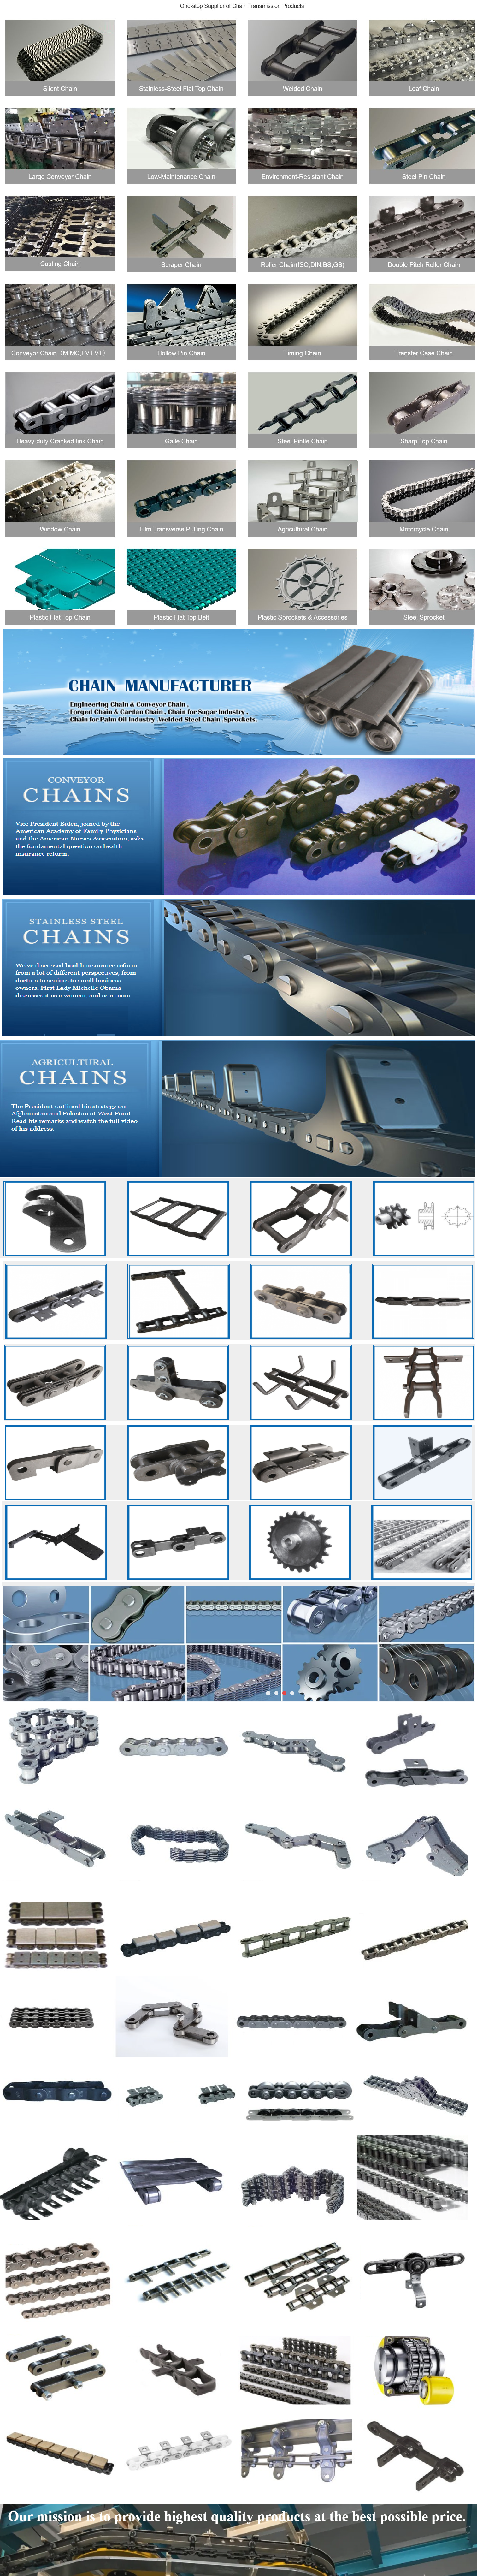 China Chain and sprocket factory : High single bushed roller chain drive  in Taoyuan China, Taiwan Province of China  Temperature Mining Machine Chain Scraper Conveyor with ce certificate top quality low price